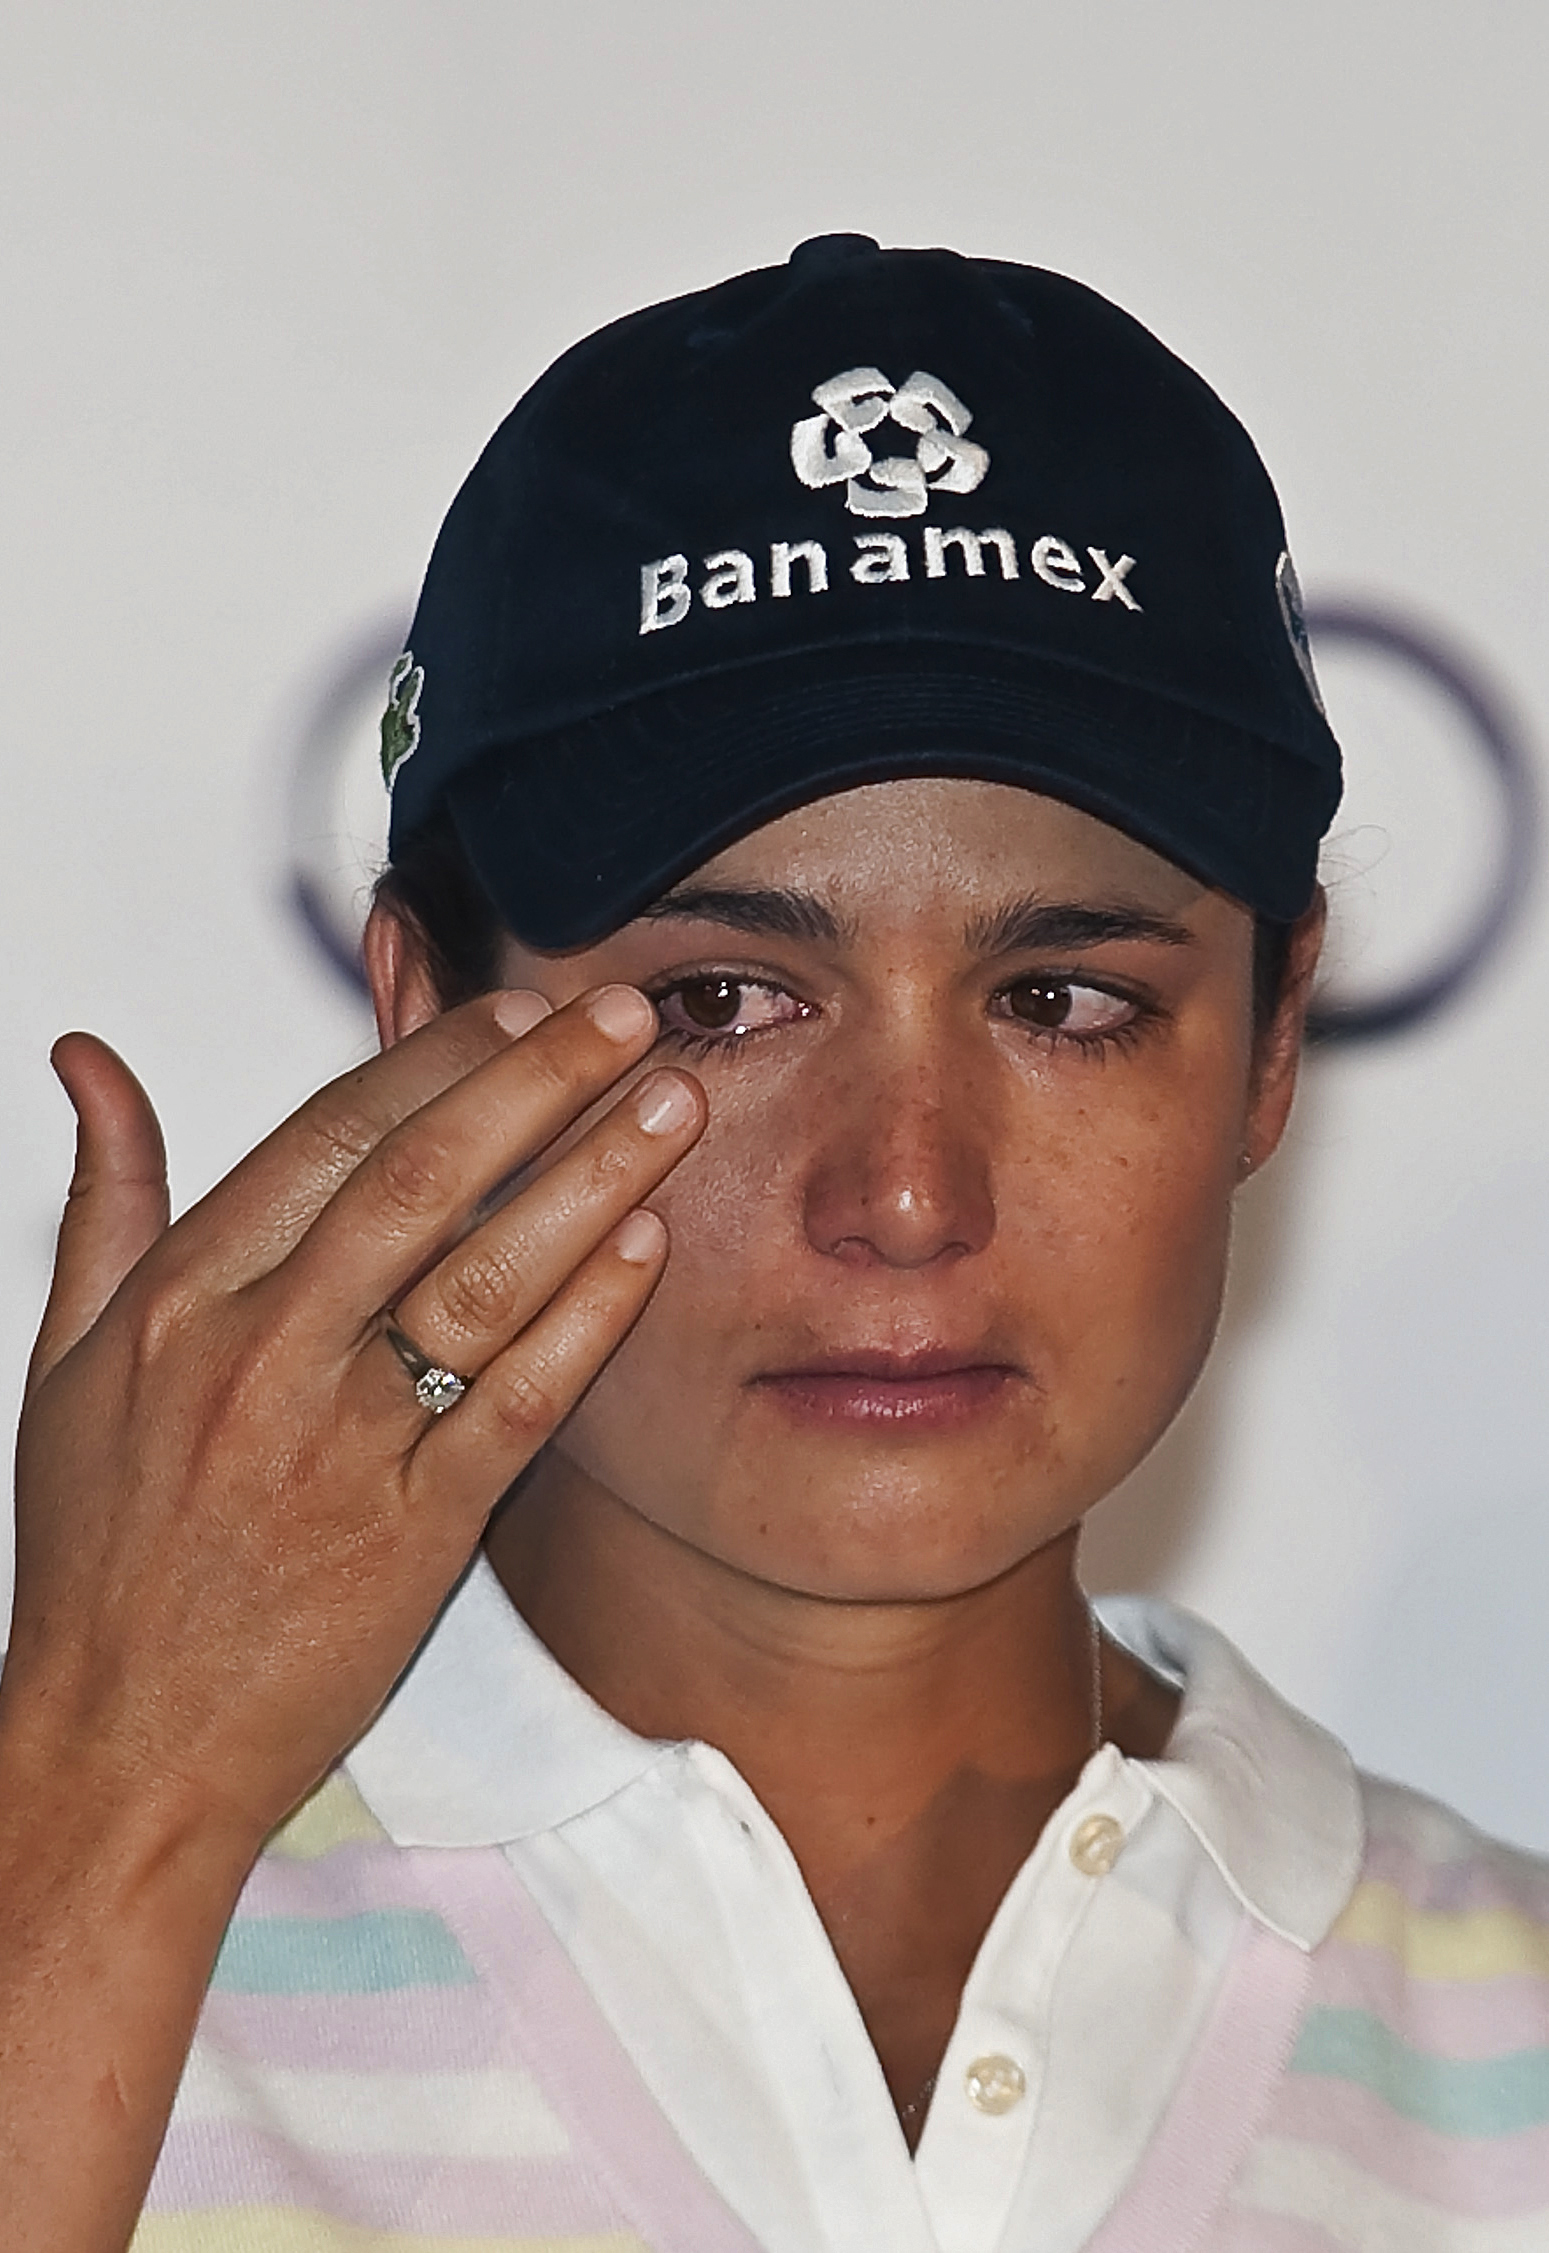 Lorena Ochoa wipes away a tear as she announces her retirement from the LPGA.